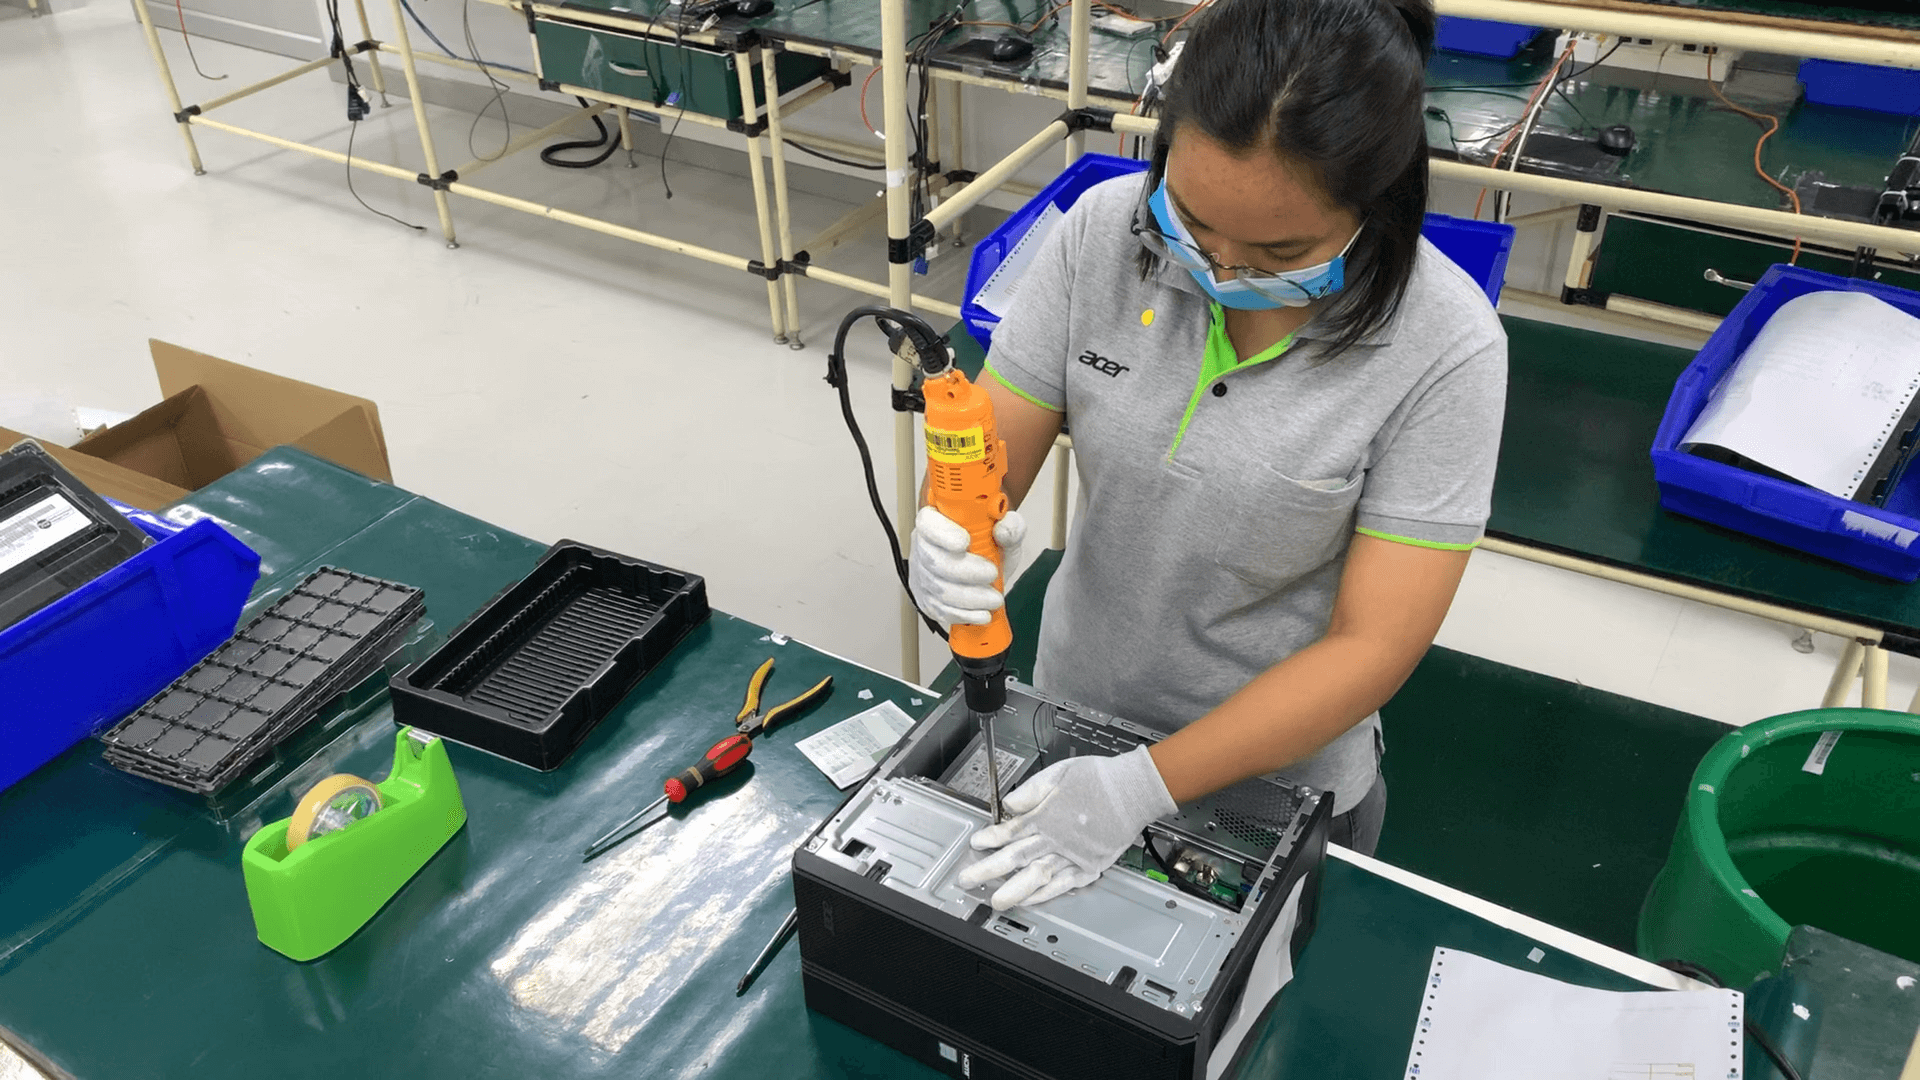 woman working in warehouse trying to fix computer